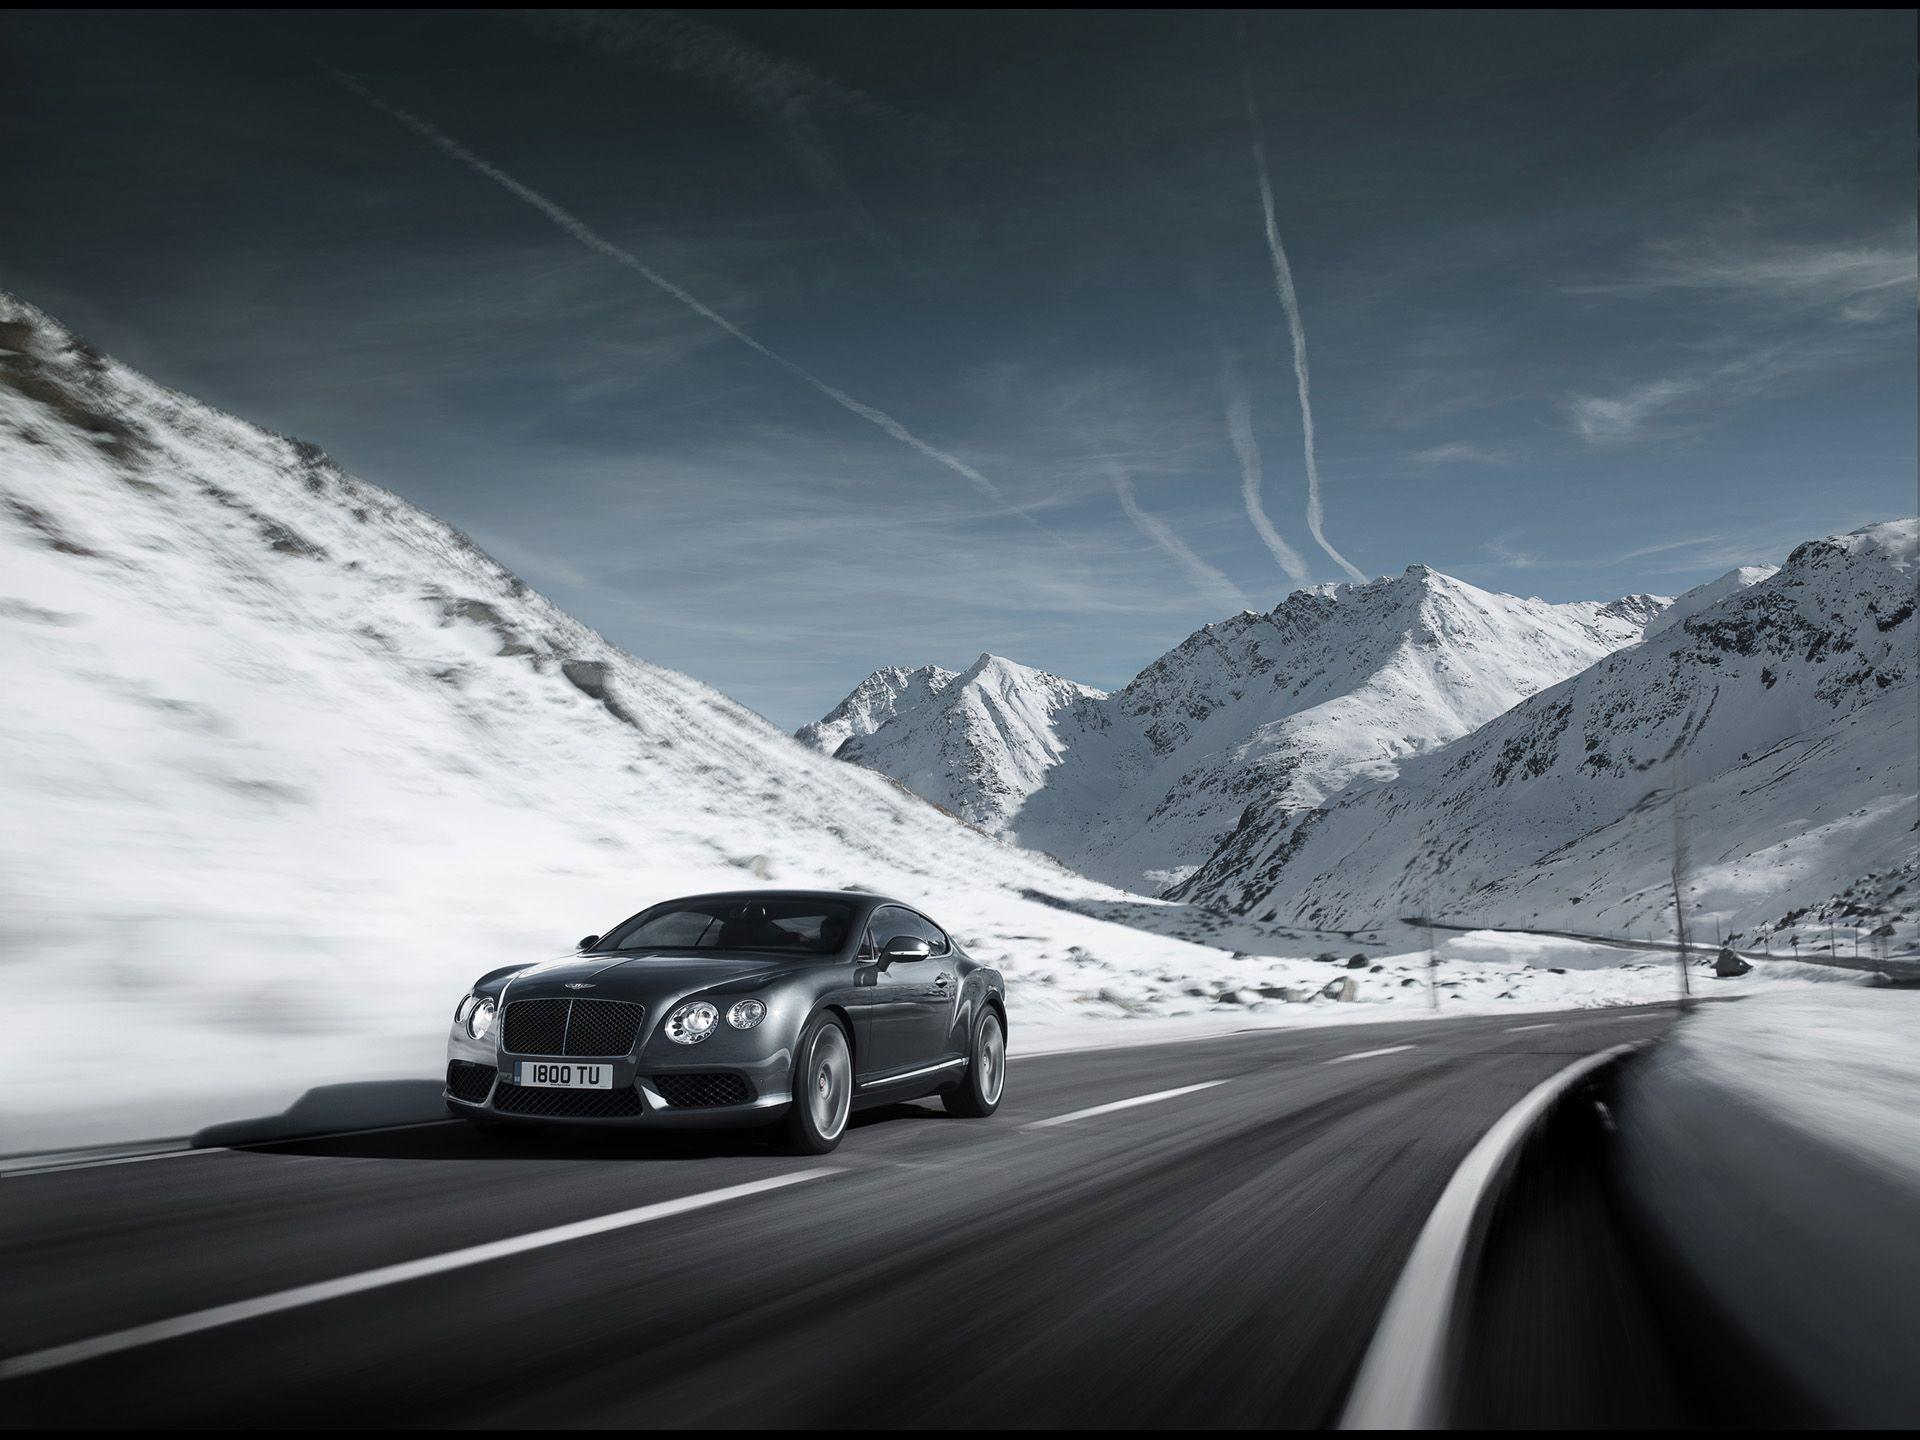 2012 Bentley Continental GT V8 - Grey Front Angle Speed ...